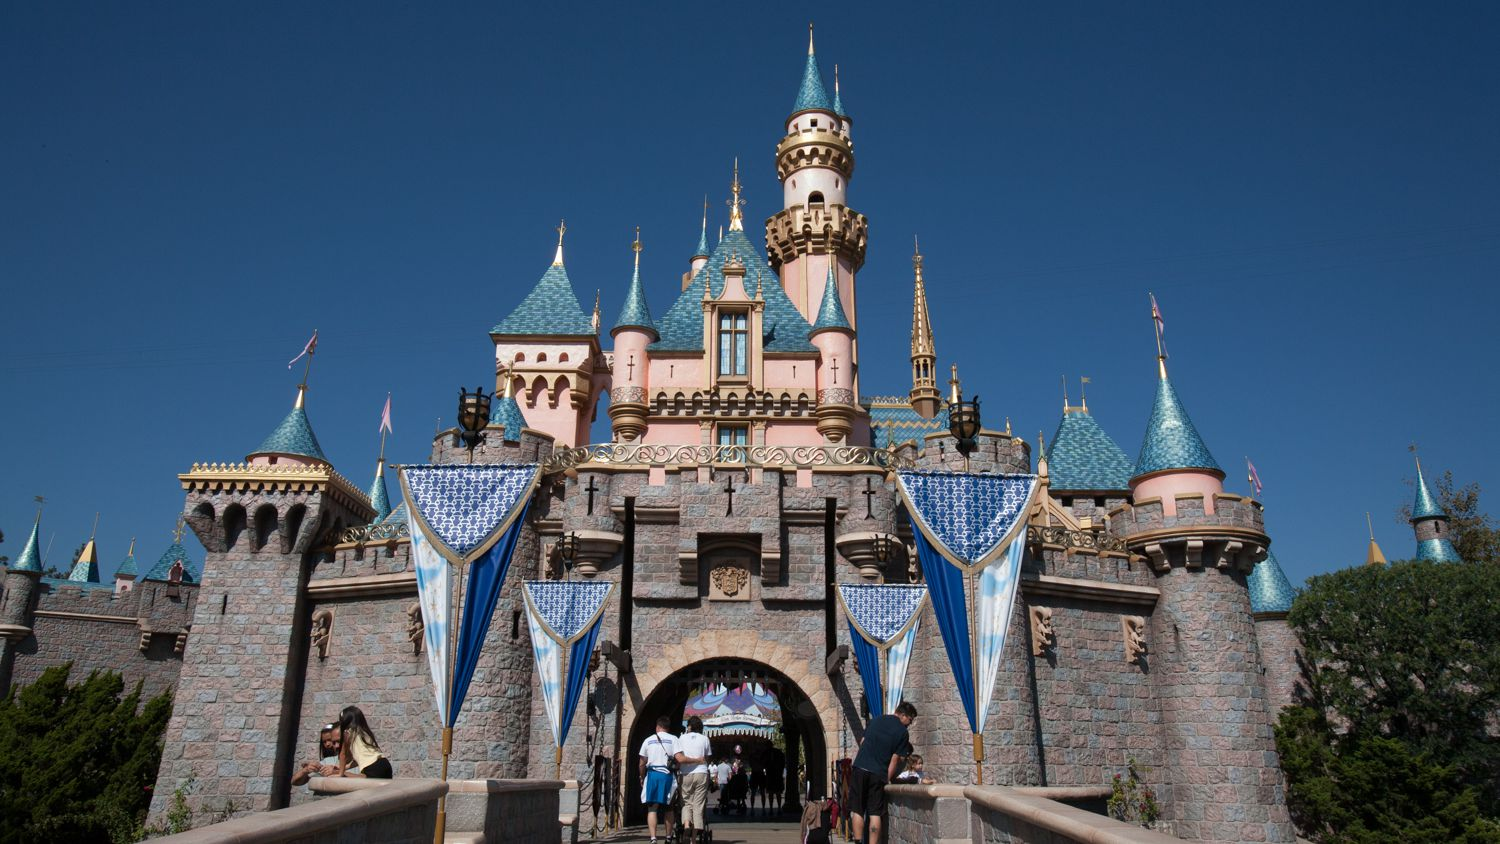 Santa Monica to Disneyland Transportation Options